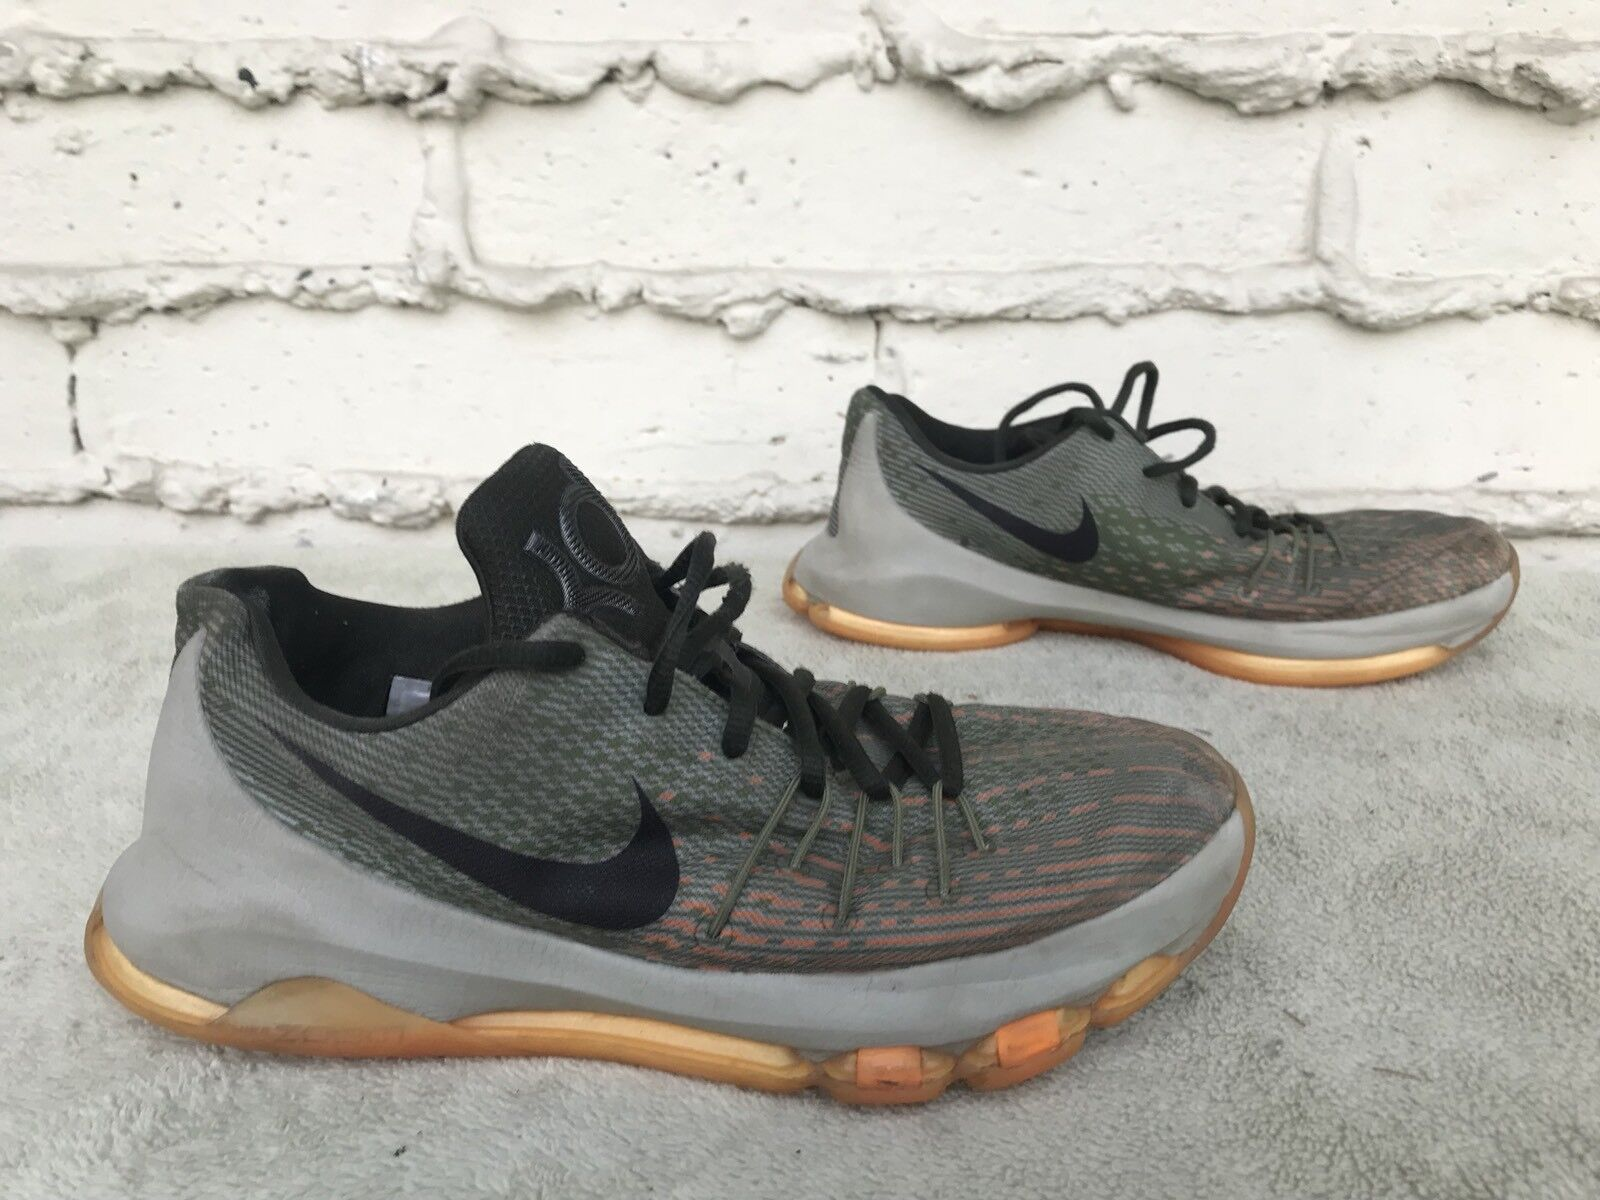 0df4c11ced91 Nike KD 8 GS VIII Easy Euro Kevin Durant Kids Youth Basketball Shoes  768867-033 4 Y for sale online